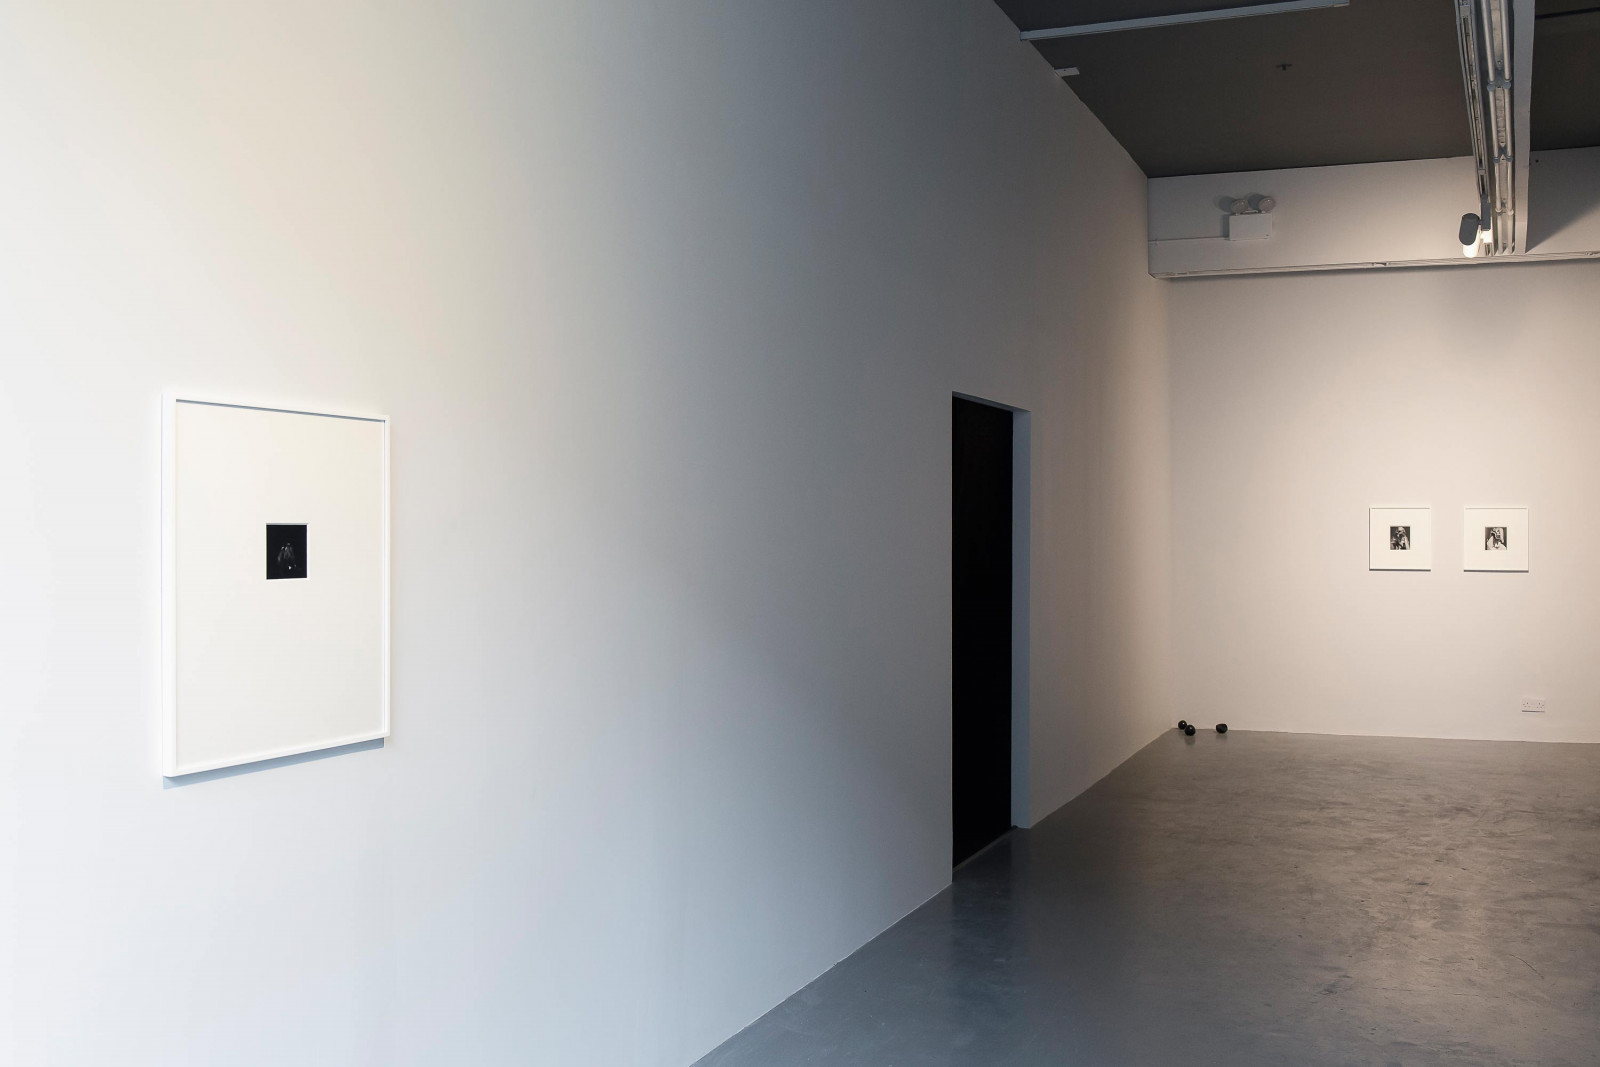 Temple Bar Gallery, Dublin, 2018/19 (solo). Curated by Cliodhna Shaffrey and Michael Hill. Photo: Kasia Kaminska.